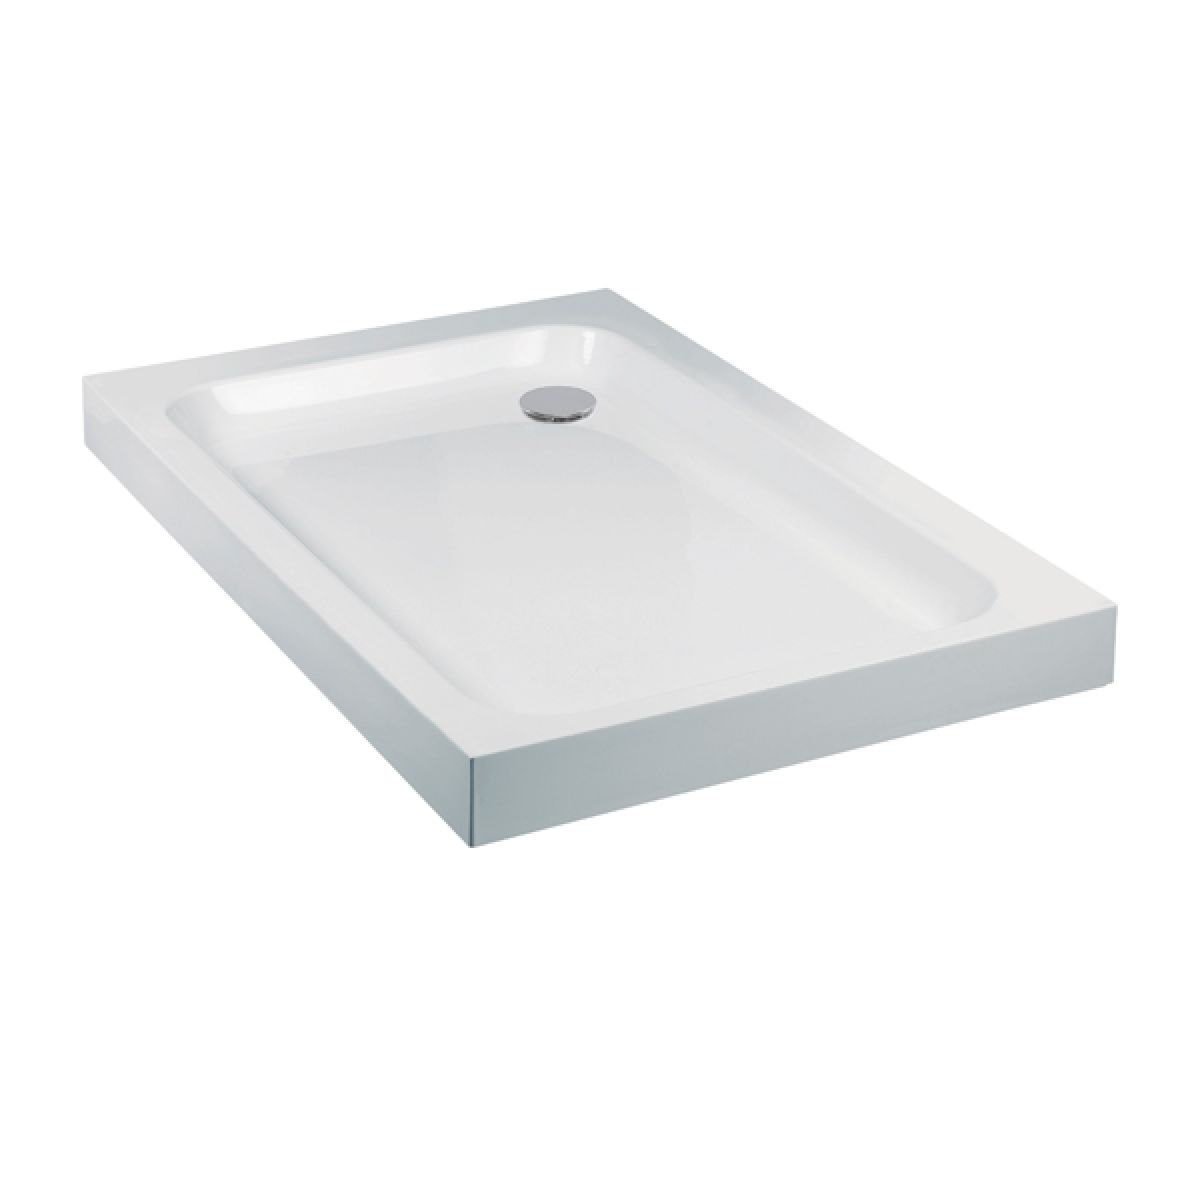 Frontline Standard Rectanglular Shower Tray 900 x 800mm